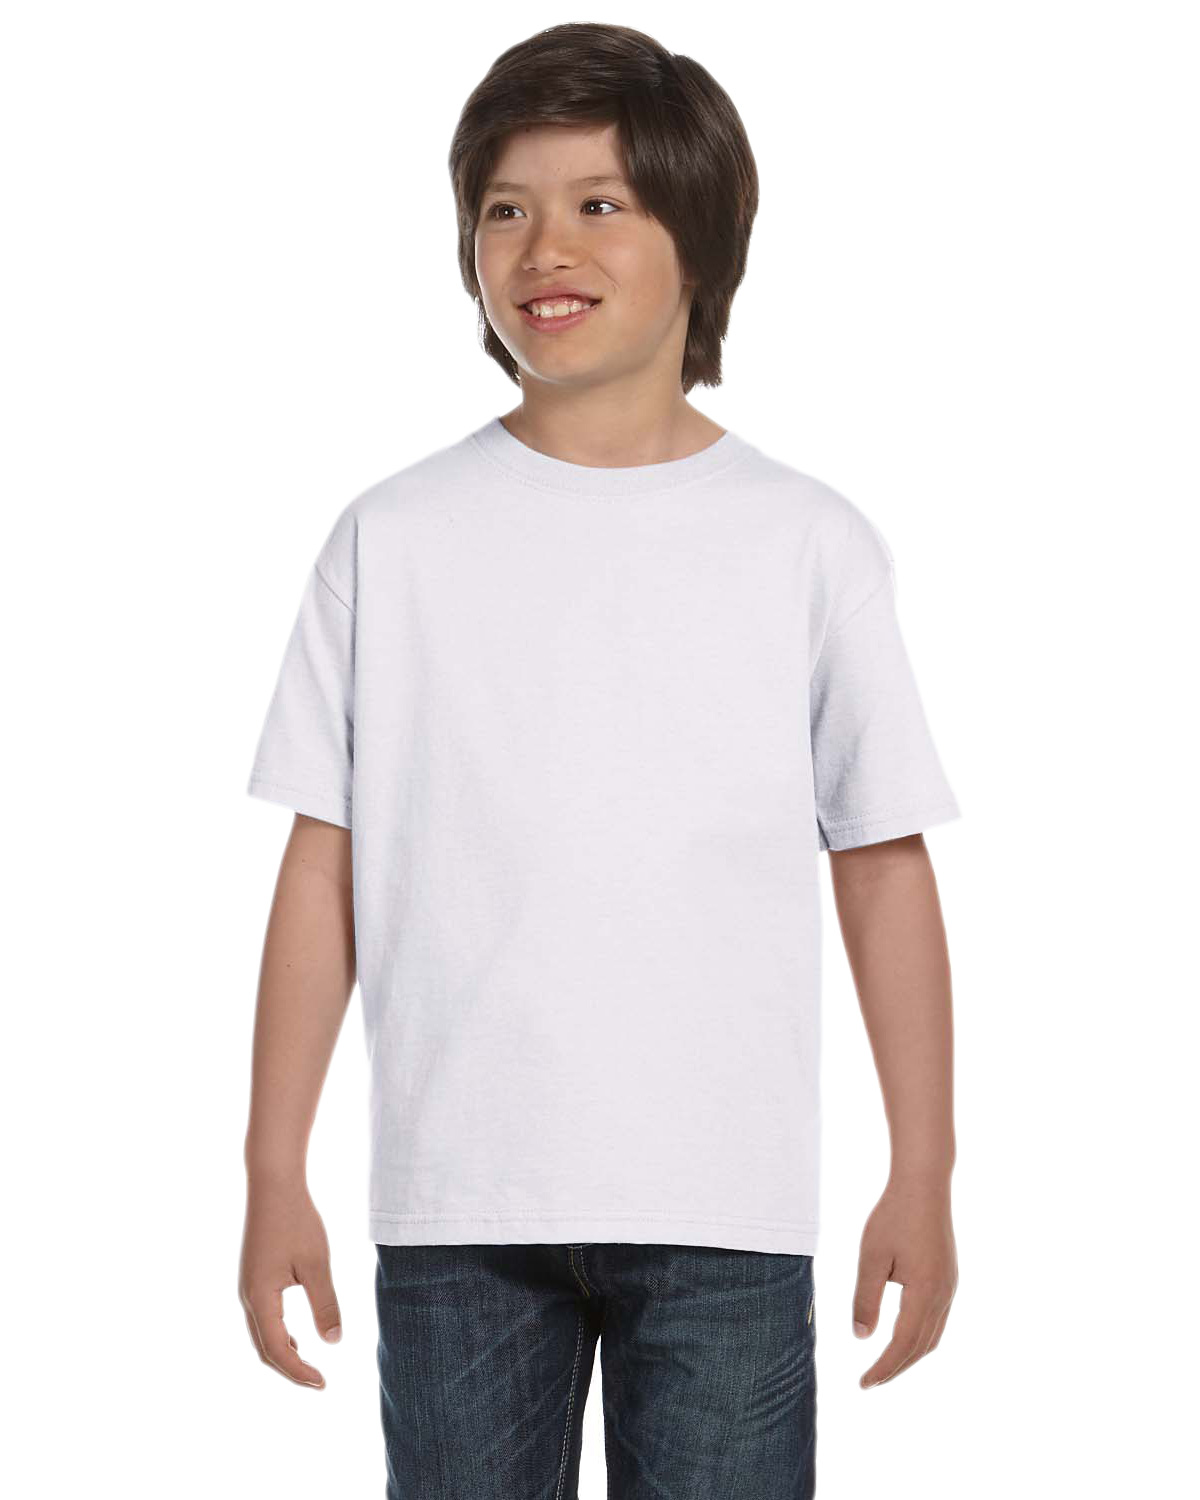 Hanes 5480 Boys 5.2 oz. ComfortSoft Cotton T-Shirt White at GotApparel